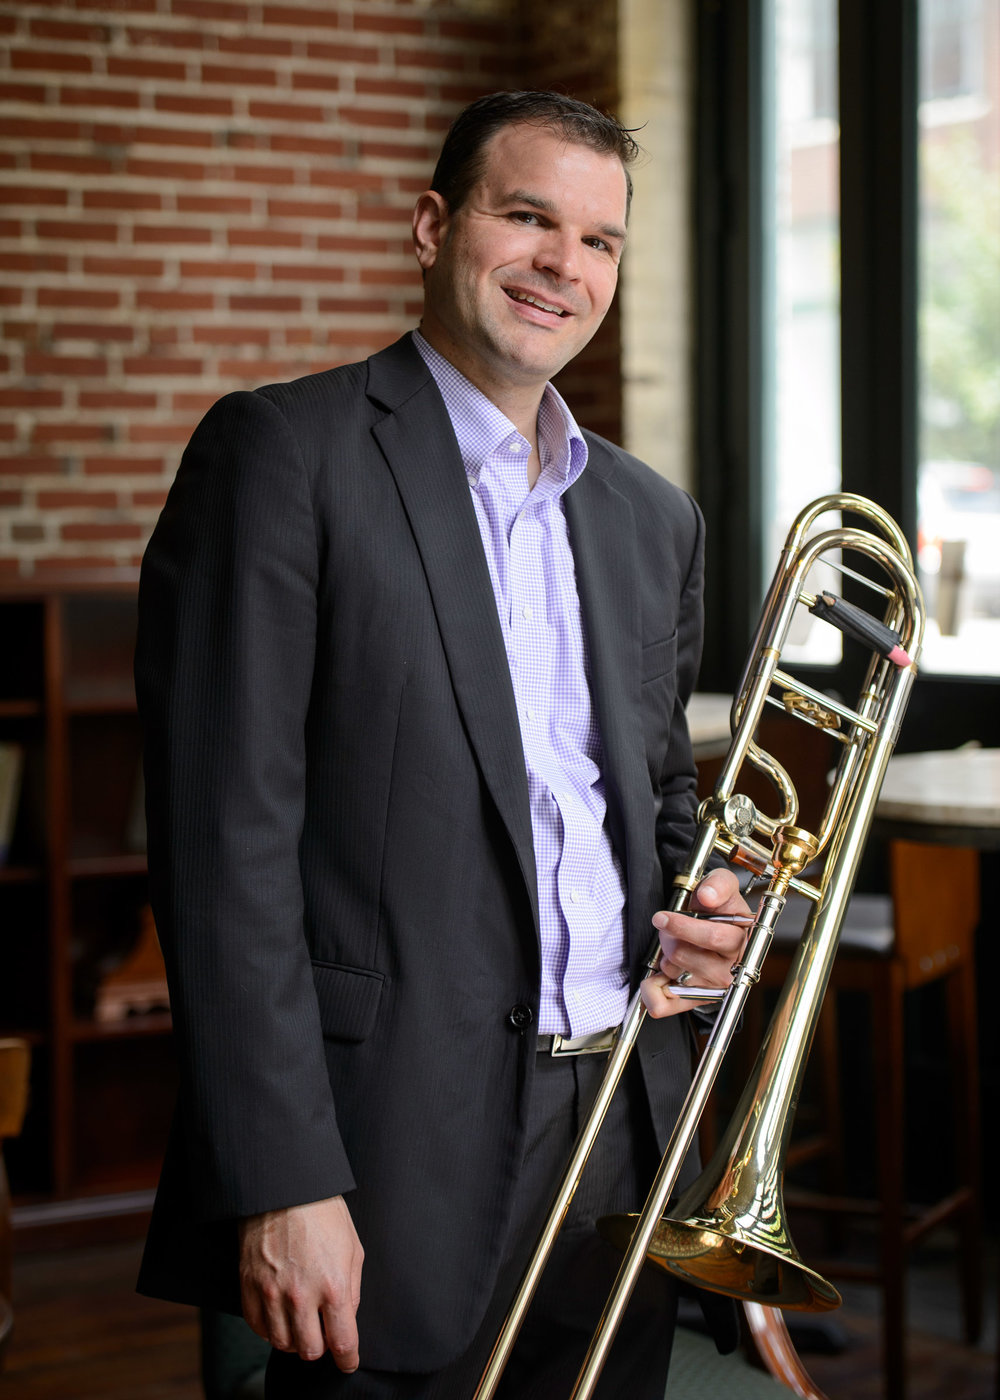 Jonathan Reycraft - Originally from Long Island, New York, Jonathan Reycraft has held the Utility Trombone position with the Saint Louis Symphony Orchestra since the 2006-2007 season.  He also serves as adjunct faculty at Washington University and St. Louis University. Before arriving in the symphony, he spent eight years serving as the Assistant Principal Trombone for the United States Naval Academy Band in Annapolis, Maryland. Mr. Reycraft completed his music degrees in trombone at the Indiana University School of Music in the spring of 1998, and his Master of Music degree in the same discipline from the University of Maryland in 2005. He has been featured as a soloist with the United States Naval Academy Band as well as the Atlantic Wind Symphony on Long Island. Jonathan Reycraft also has performed with the Baltimore National symphony orchestras, the Colorado Music Festival and Sun Valley Summer Symphony. Mr. Reycraft's former teachers include Michael Canipe, M. Dee Stewart, Scott Hartman, the late Dr. Milton Stevens, and John Huling.